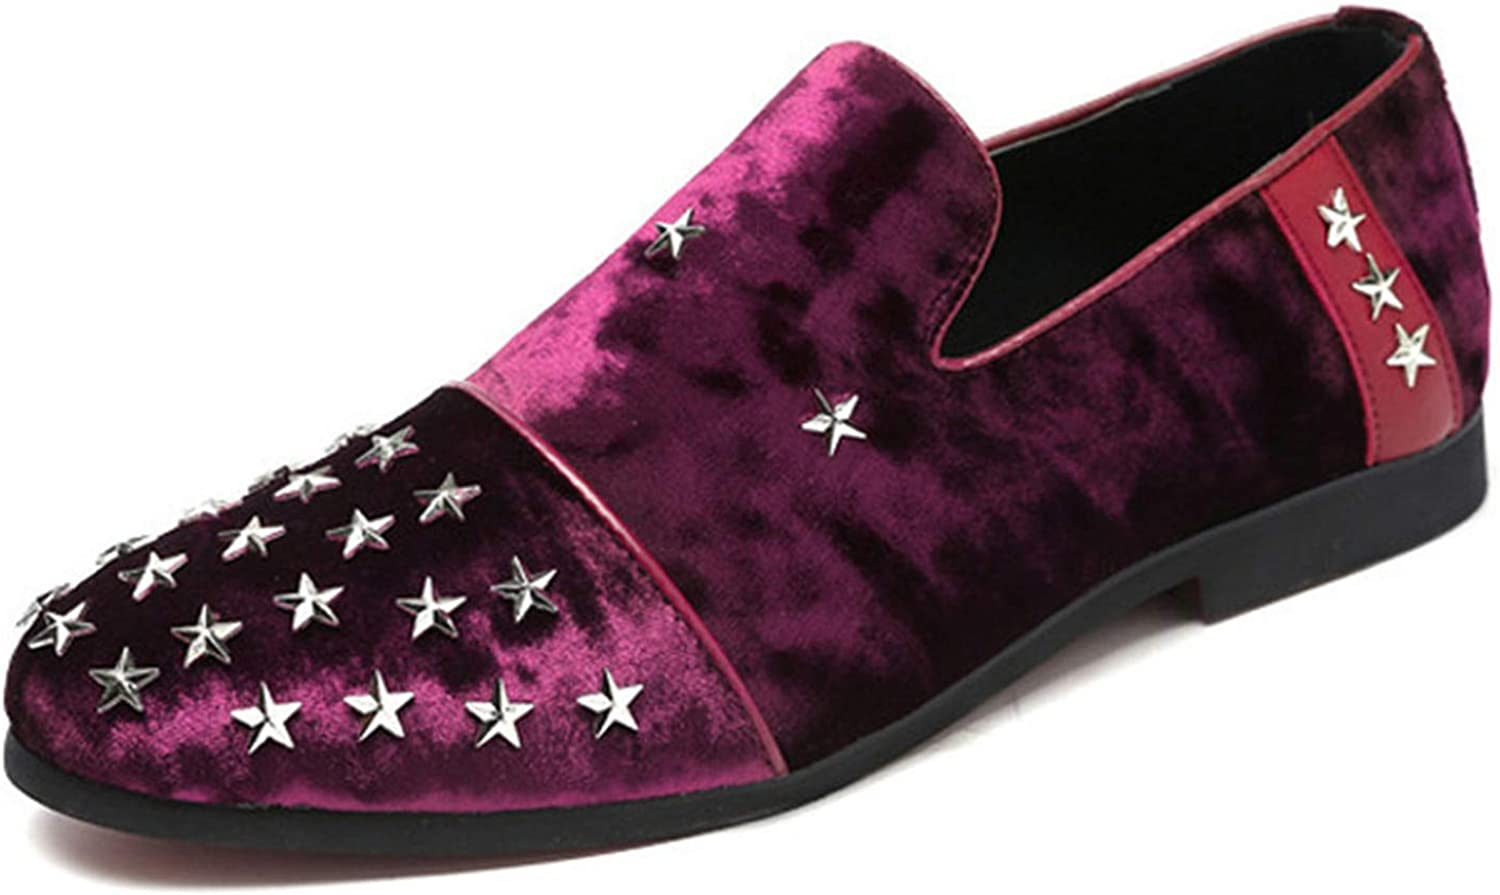 Thadensama Mens Shoes Casual Faux Suede Loafers Slip On Stars Design Round Toe Shoes Men Fashion Mens Shoes Fashion 2018